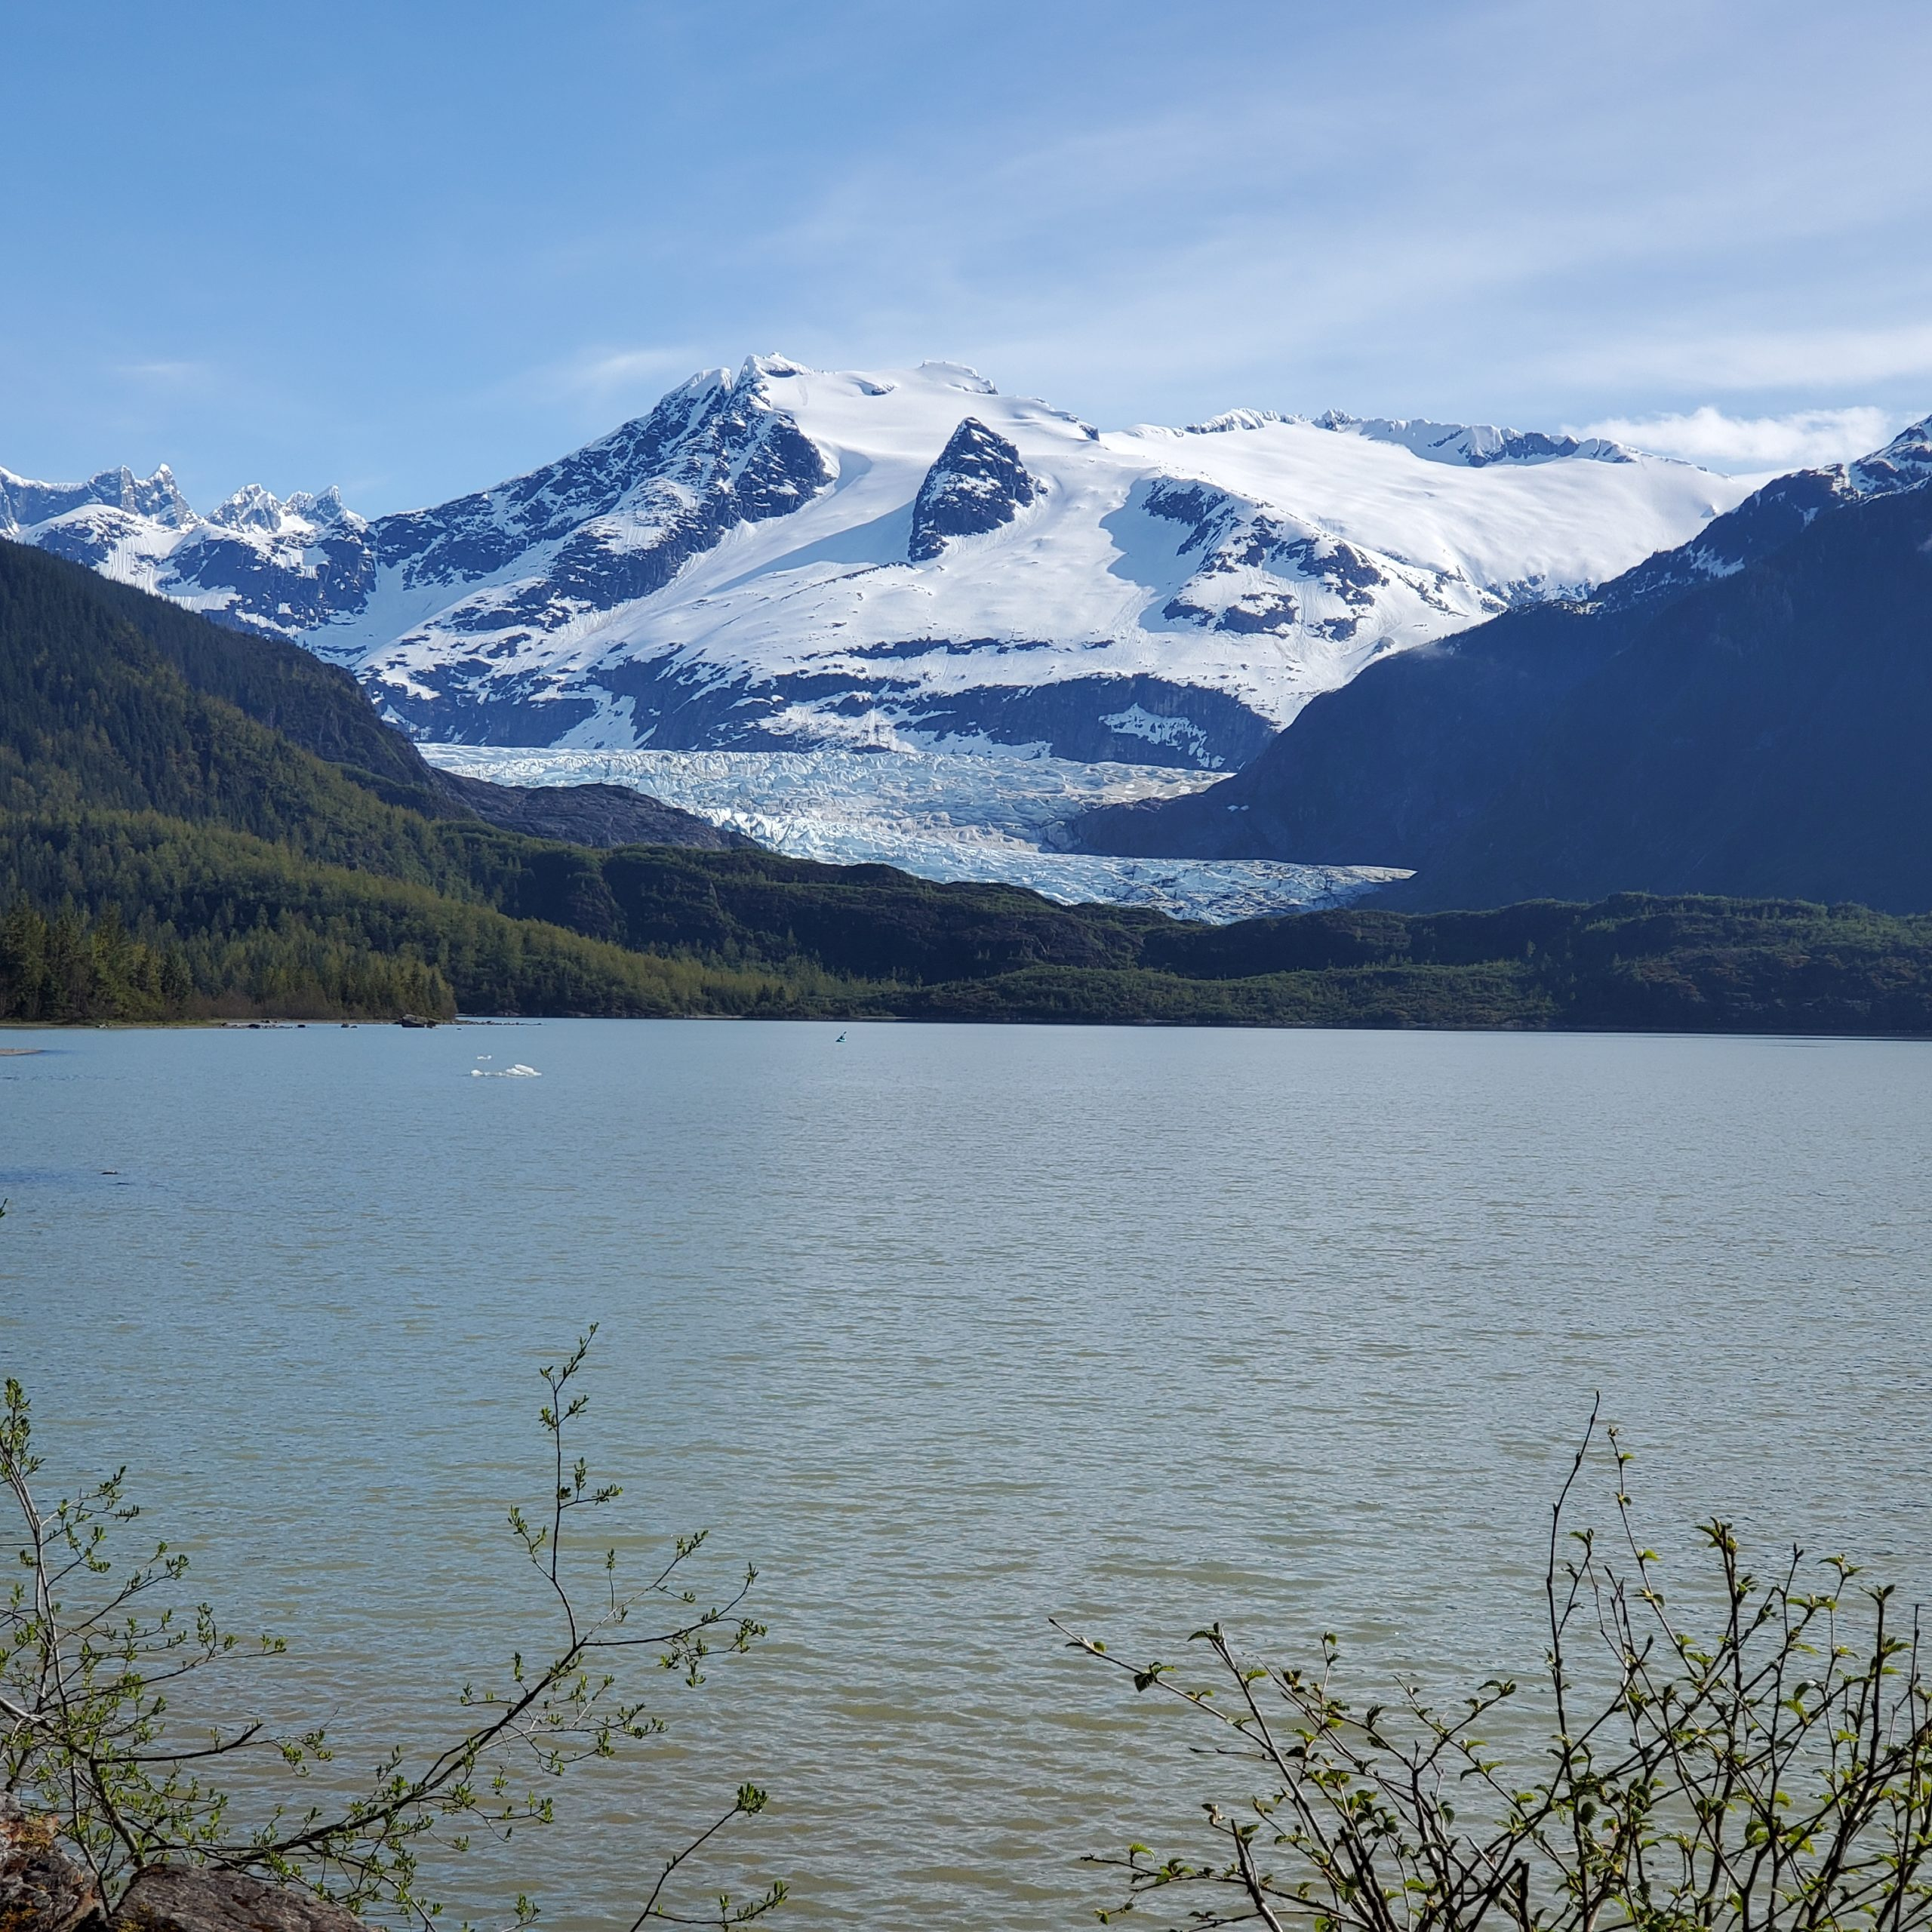 Lake with large mountain/glacier in the back